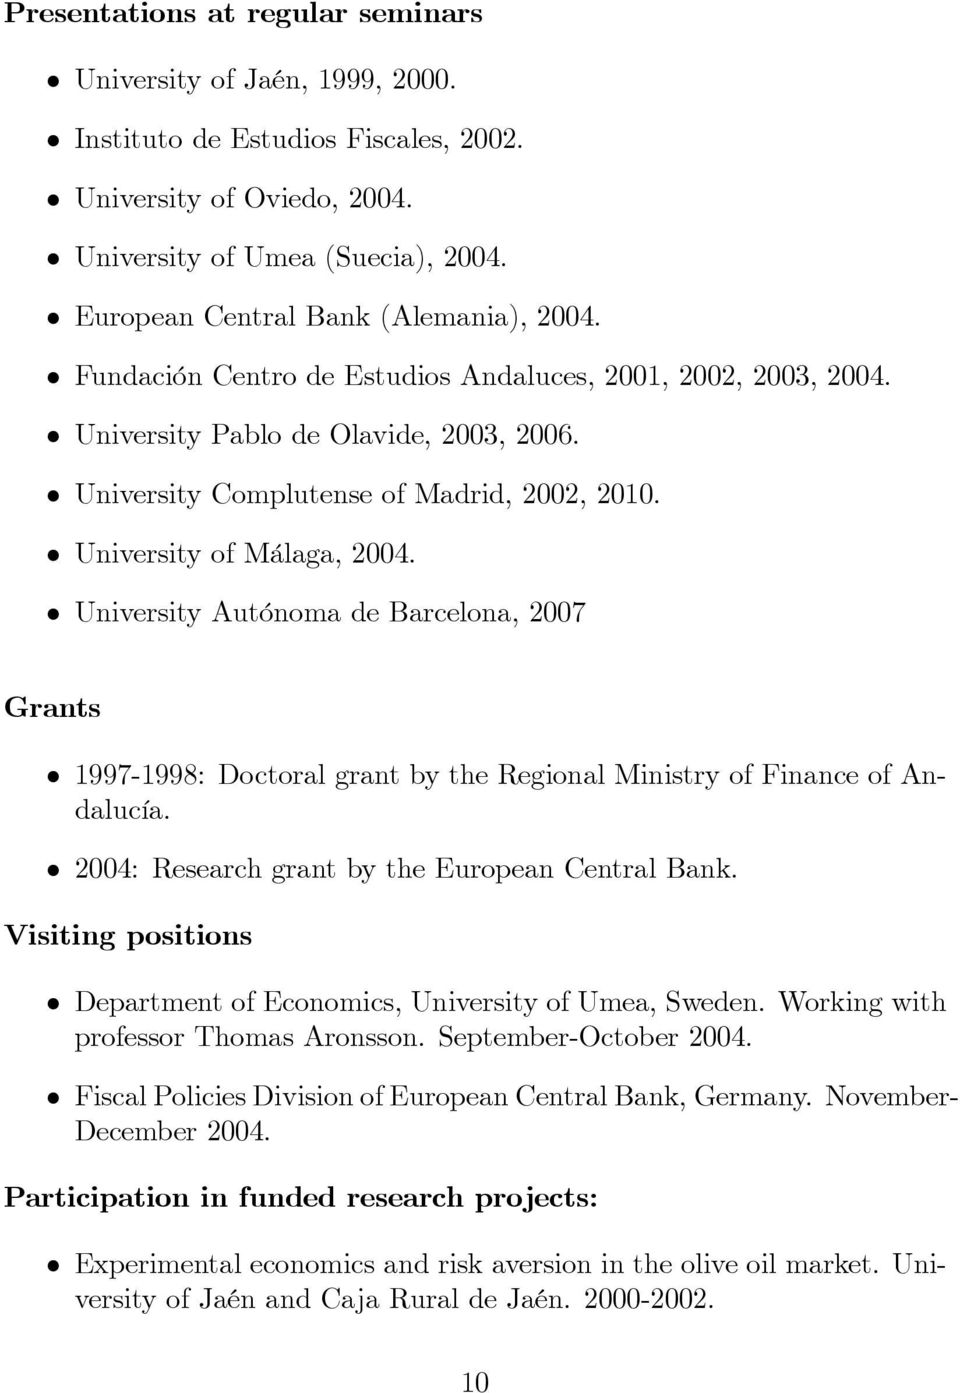 University of Málaga, 2004. University Autónoma de Barcelona, 2007 Grants 1997-1998: Doctoral grant by the Regional Ministry of Finance of Andalucía. 2004: Research grant by the European Central Bank.